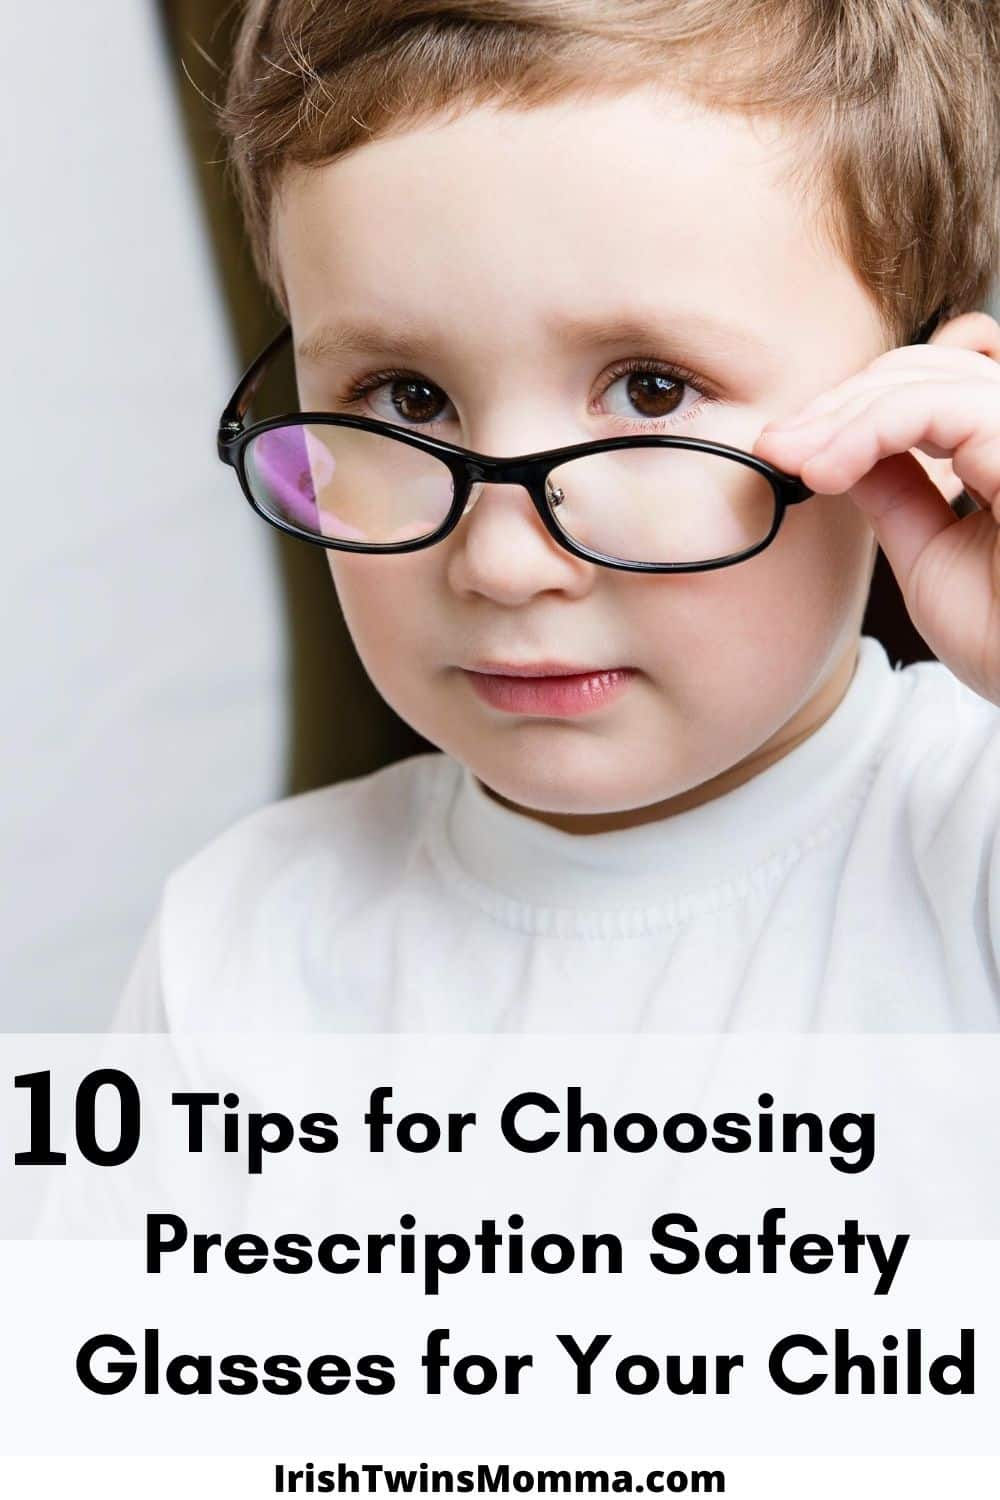 Prescription safety glasses are a good all-round option for children, with shatterproof frames and lenses that offer durability without compromising on style. Here are some tips to help you meet all of your goals in finding the right fit for your child. via @irishtwinsmom11